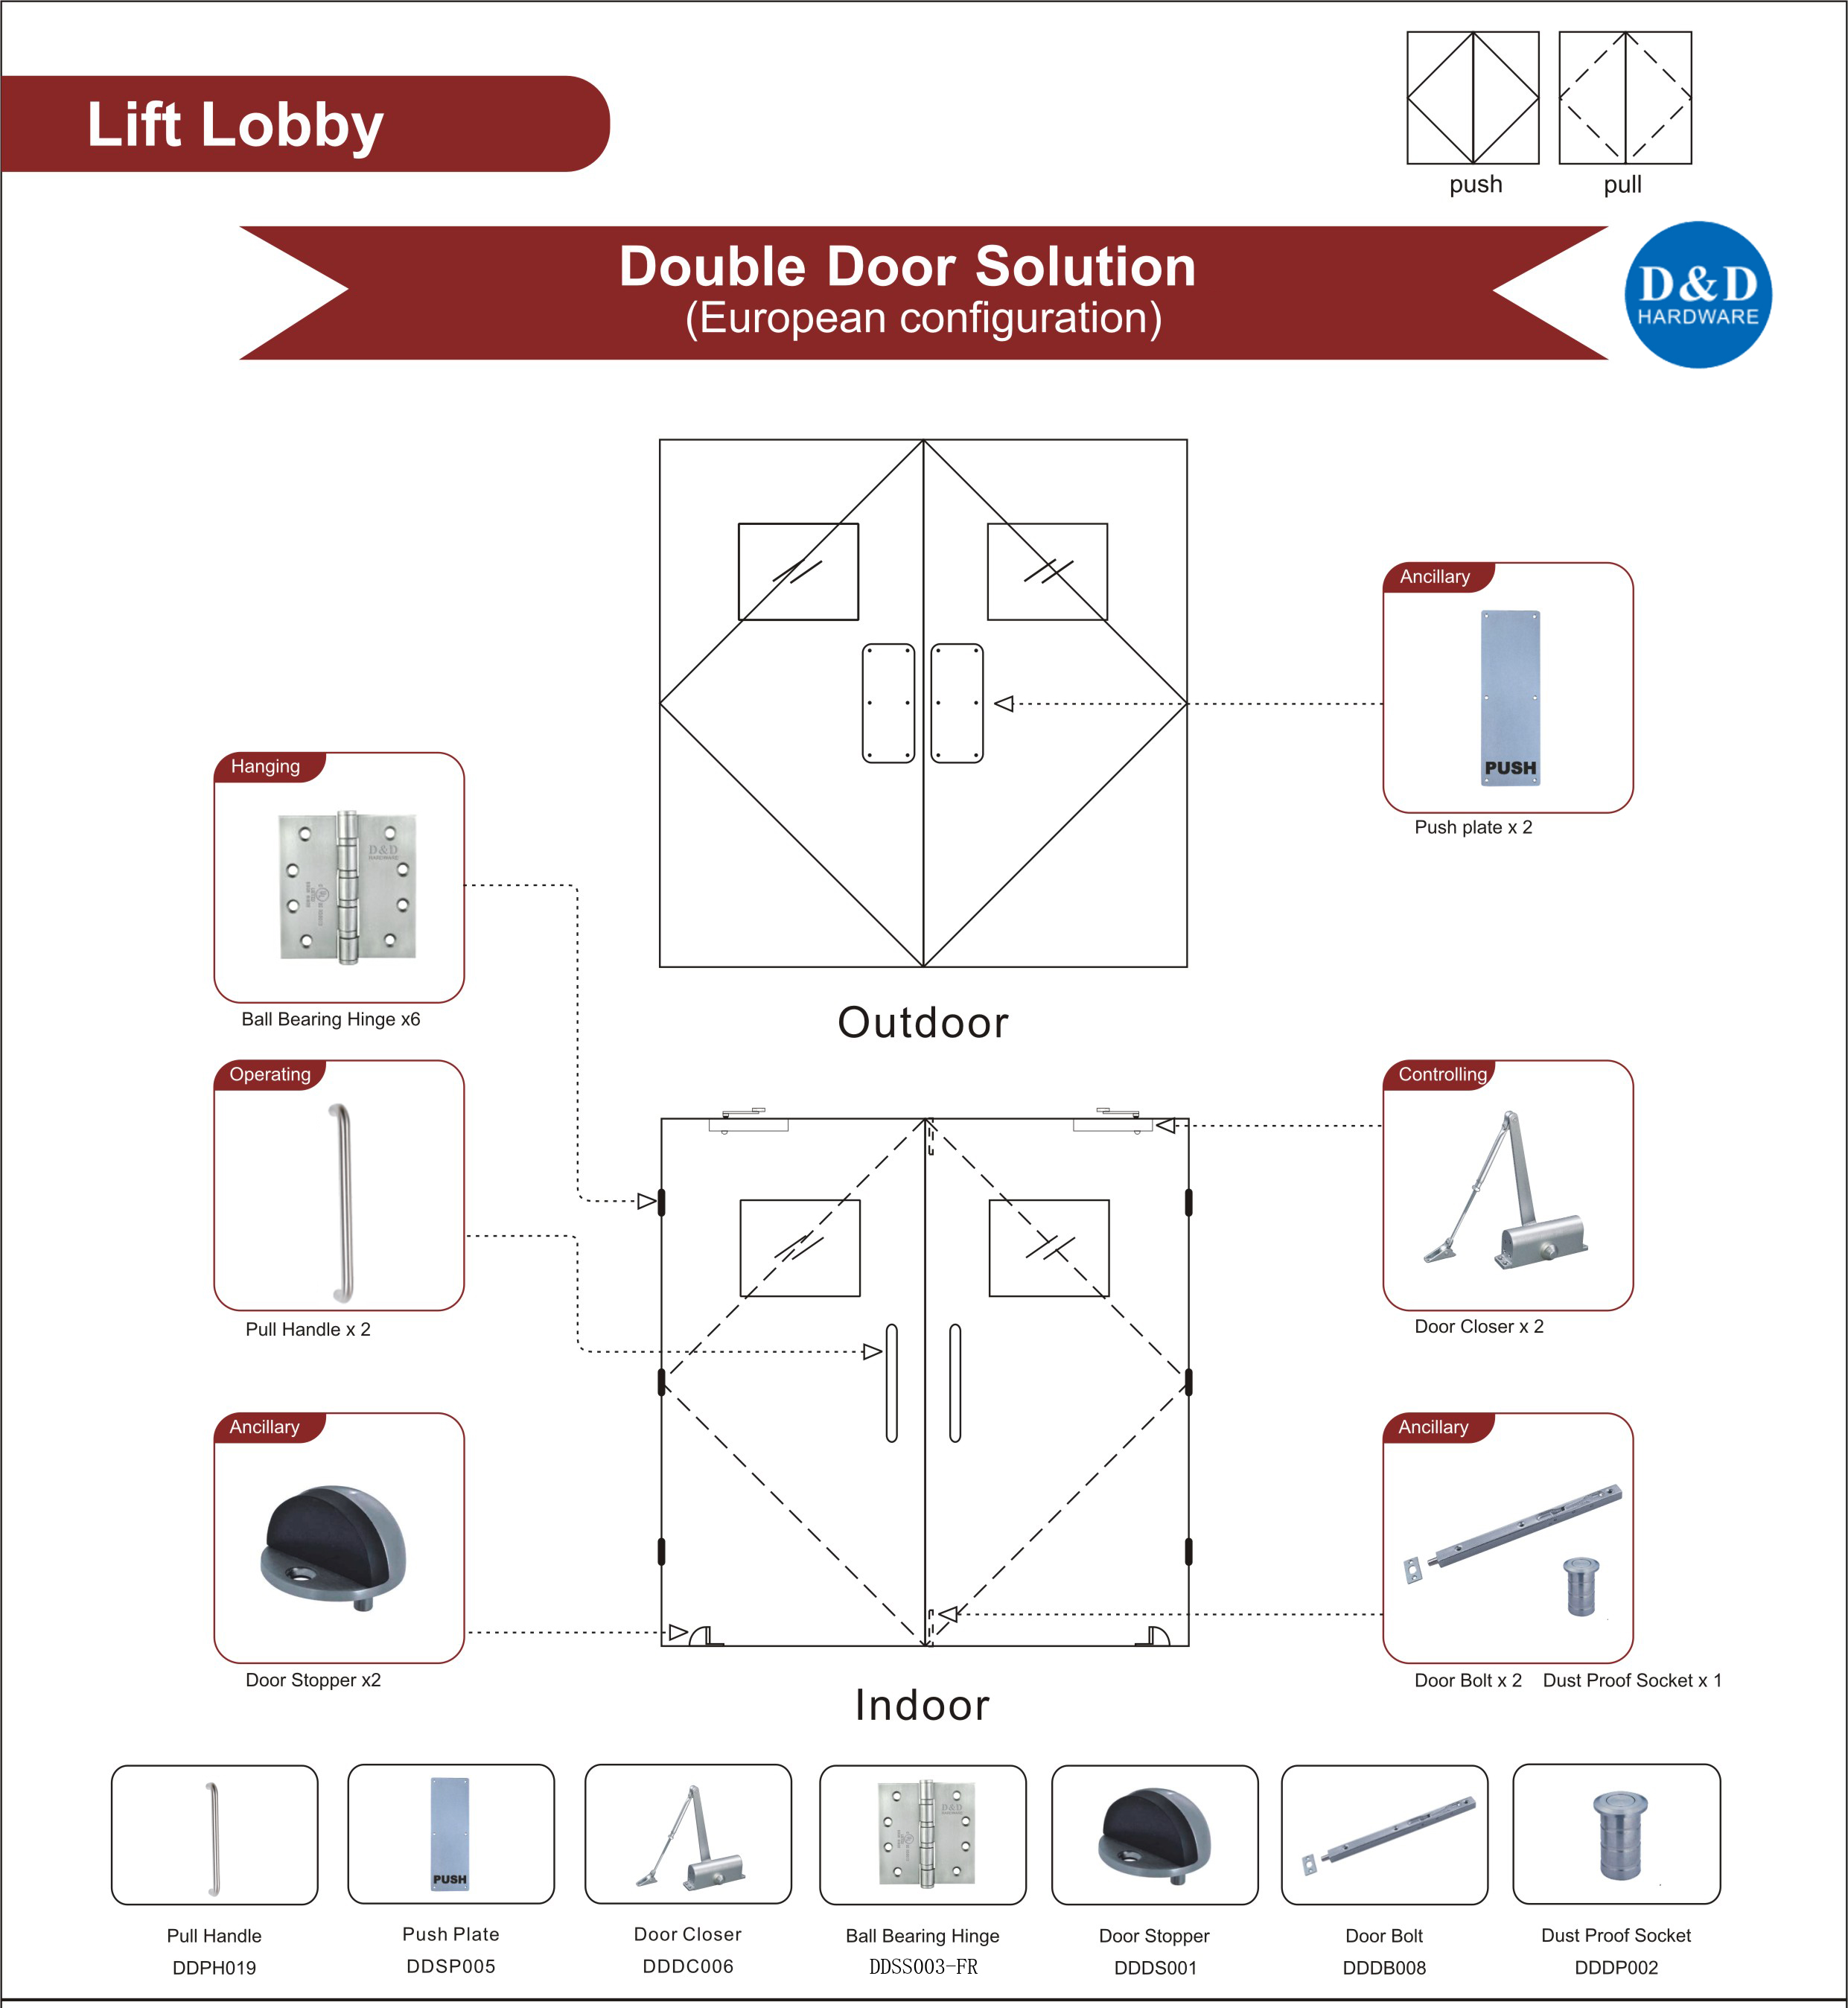 Wooden Fire Rated Door Hardware for Lift Lobby Double Door